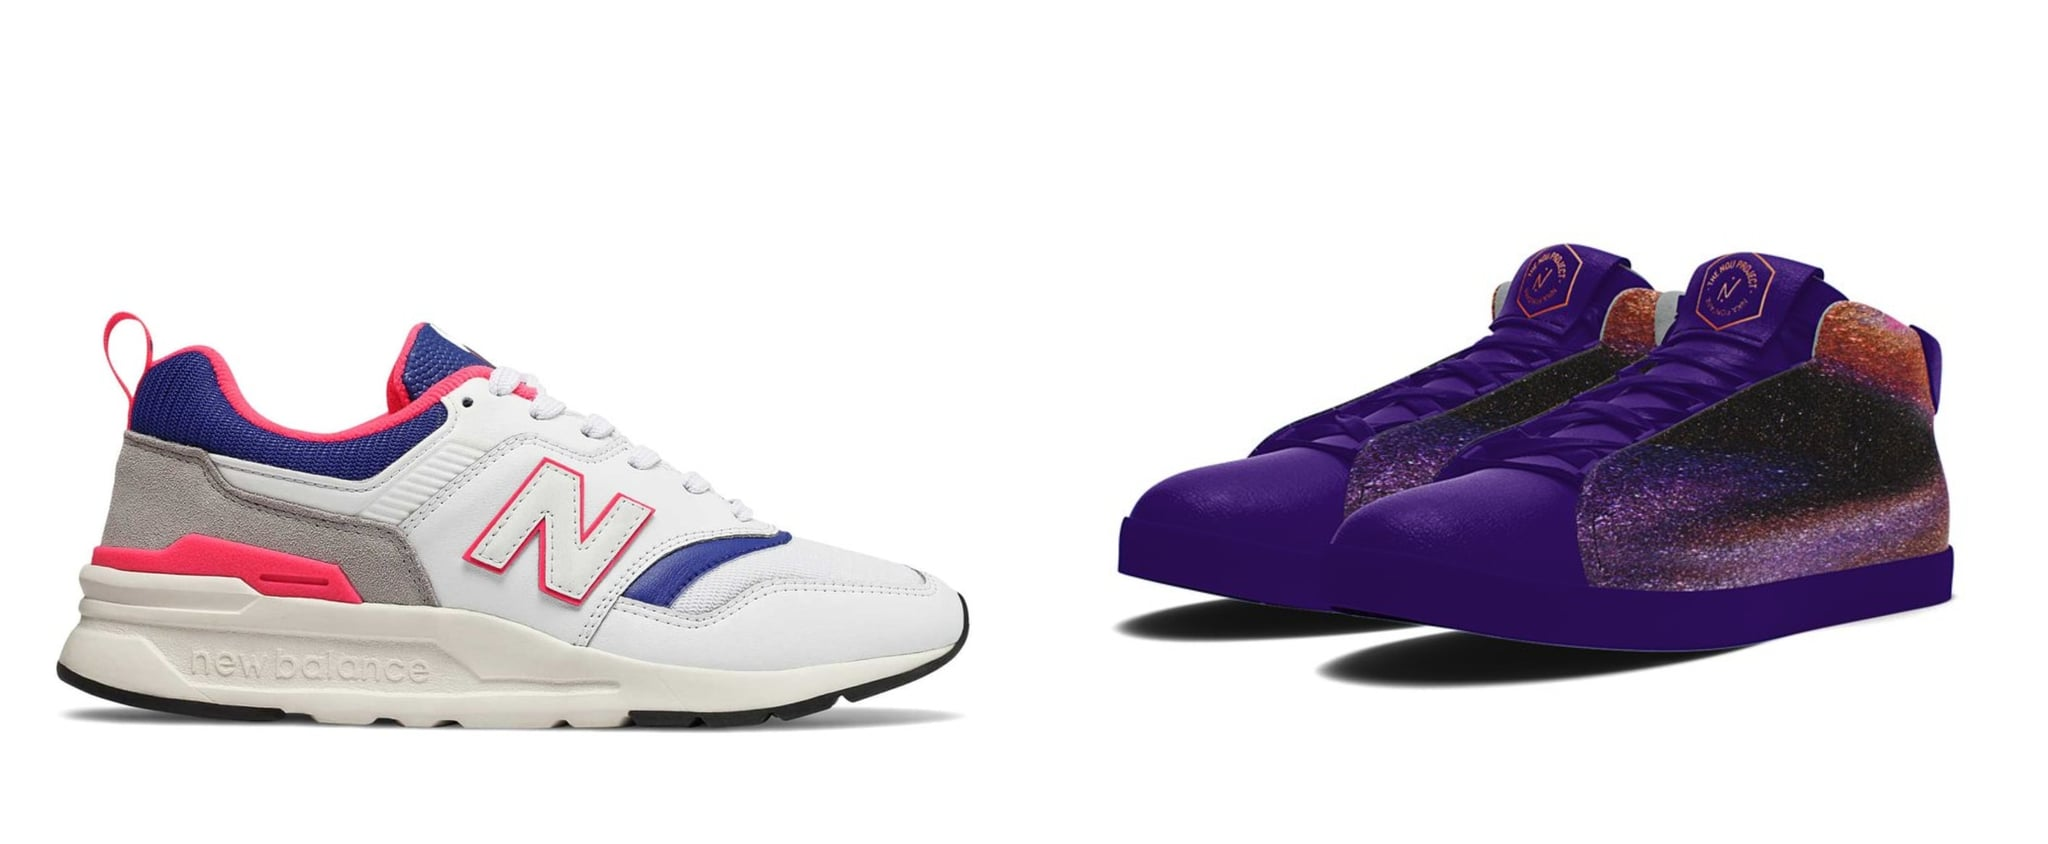 Spring/Summer Must-Have Sneakers